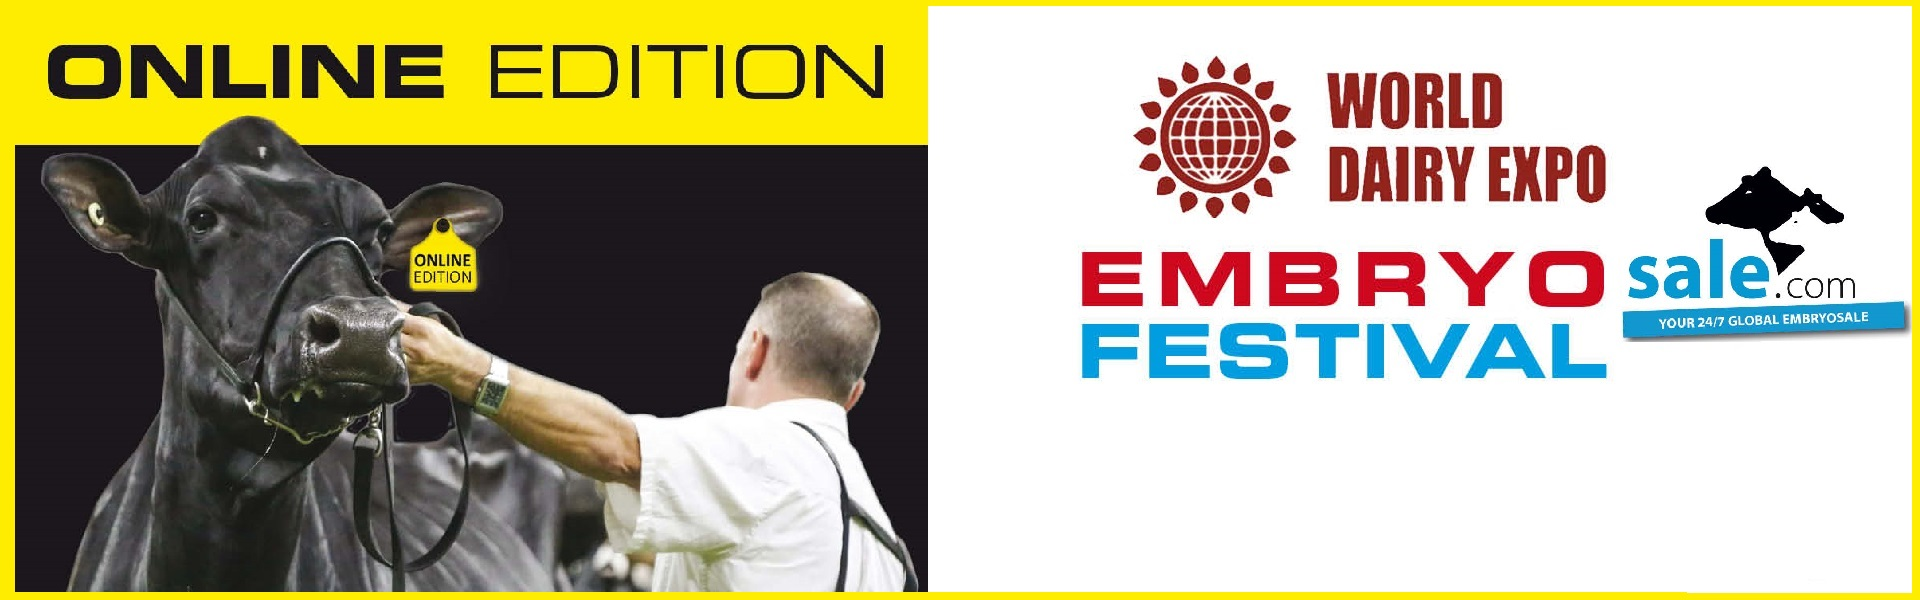 Embryo Festival World Dairy Expo online edition